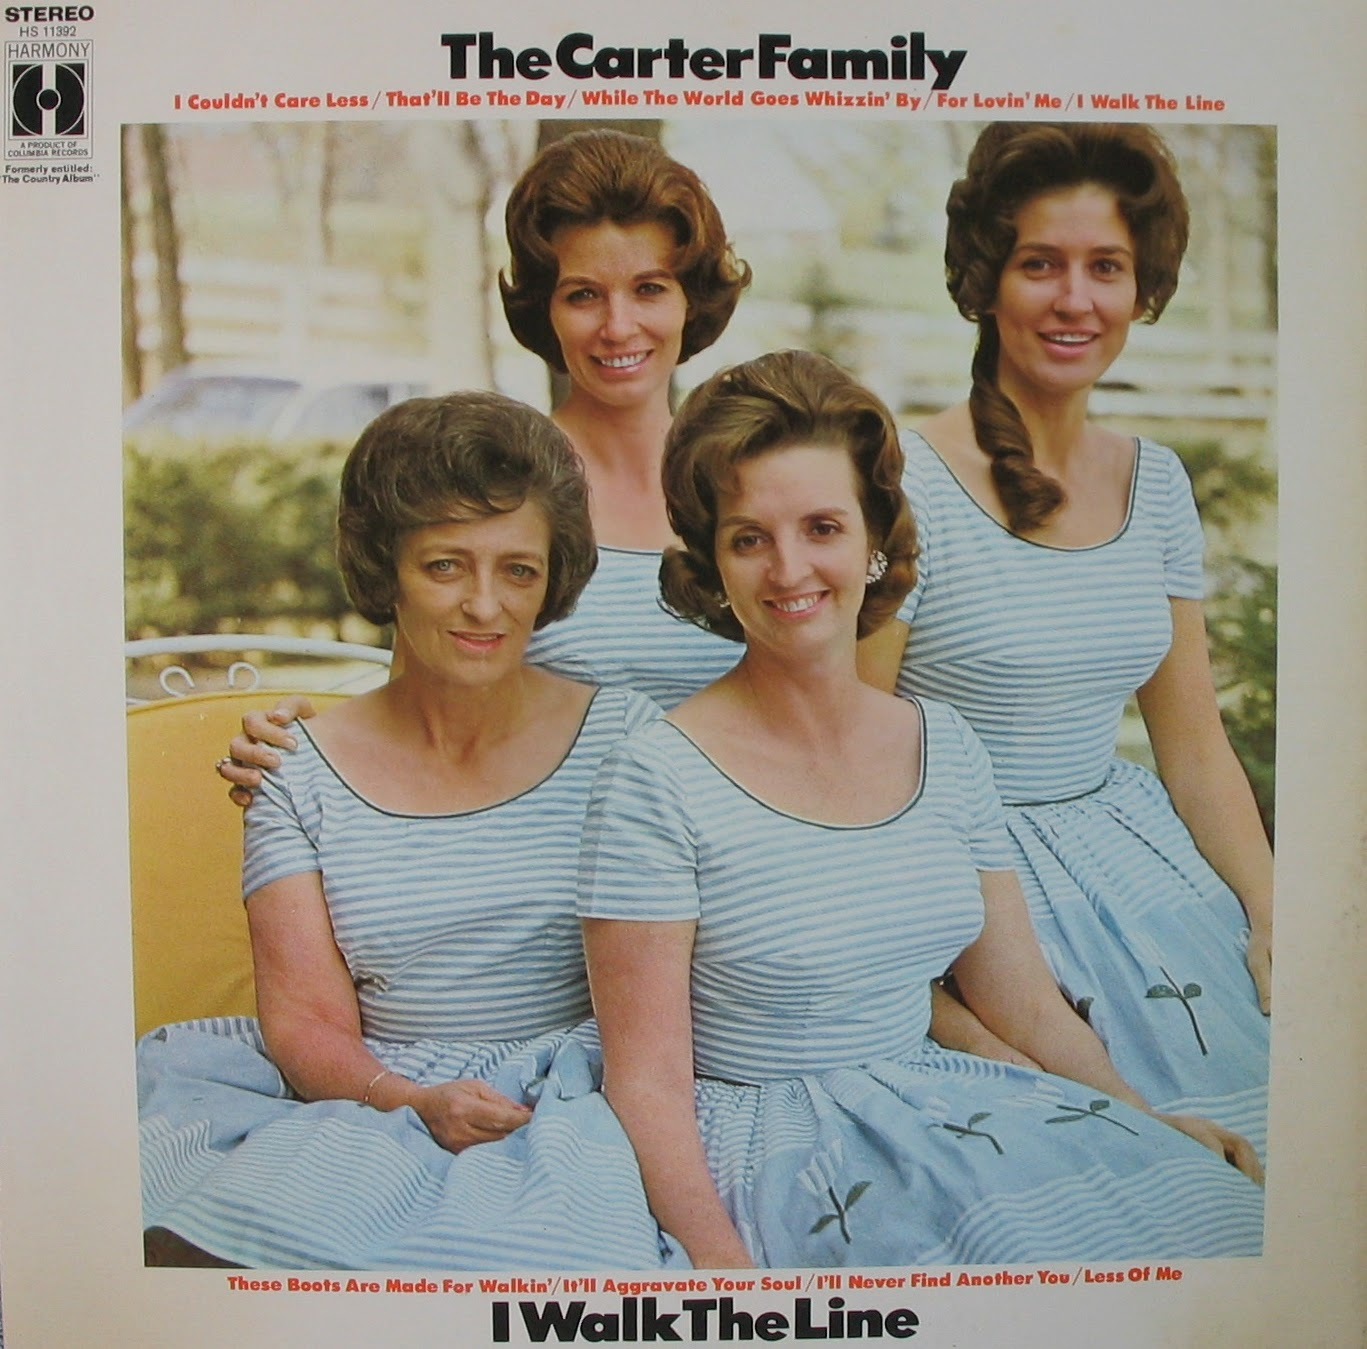 The Carter Family - A Proper Introduction To The Carter Family - Keep On The Sunny Side